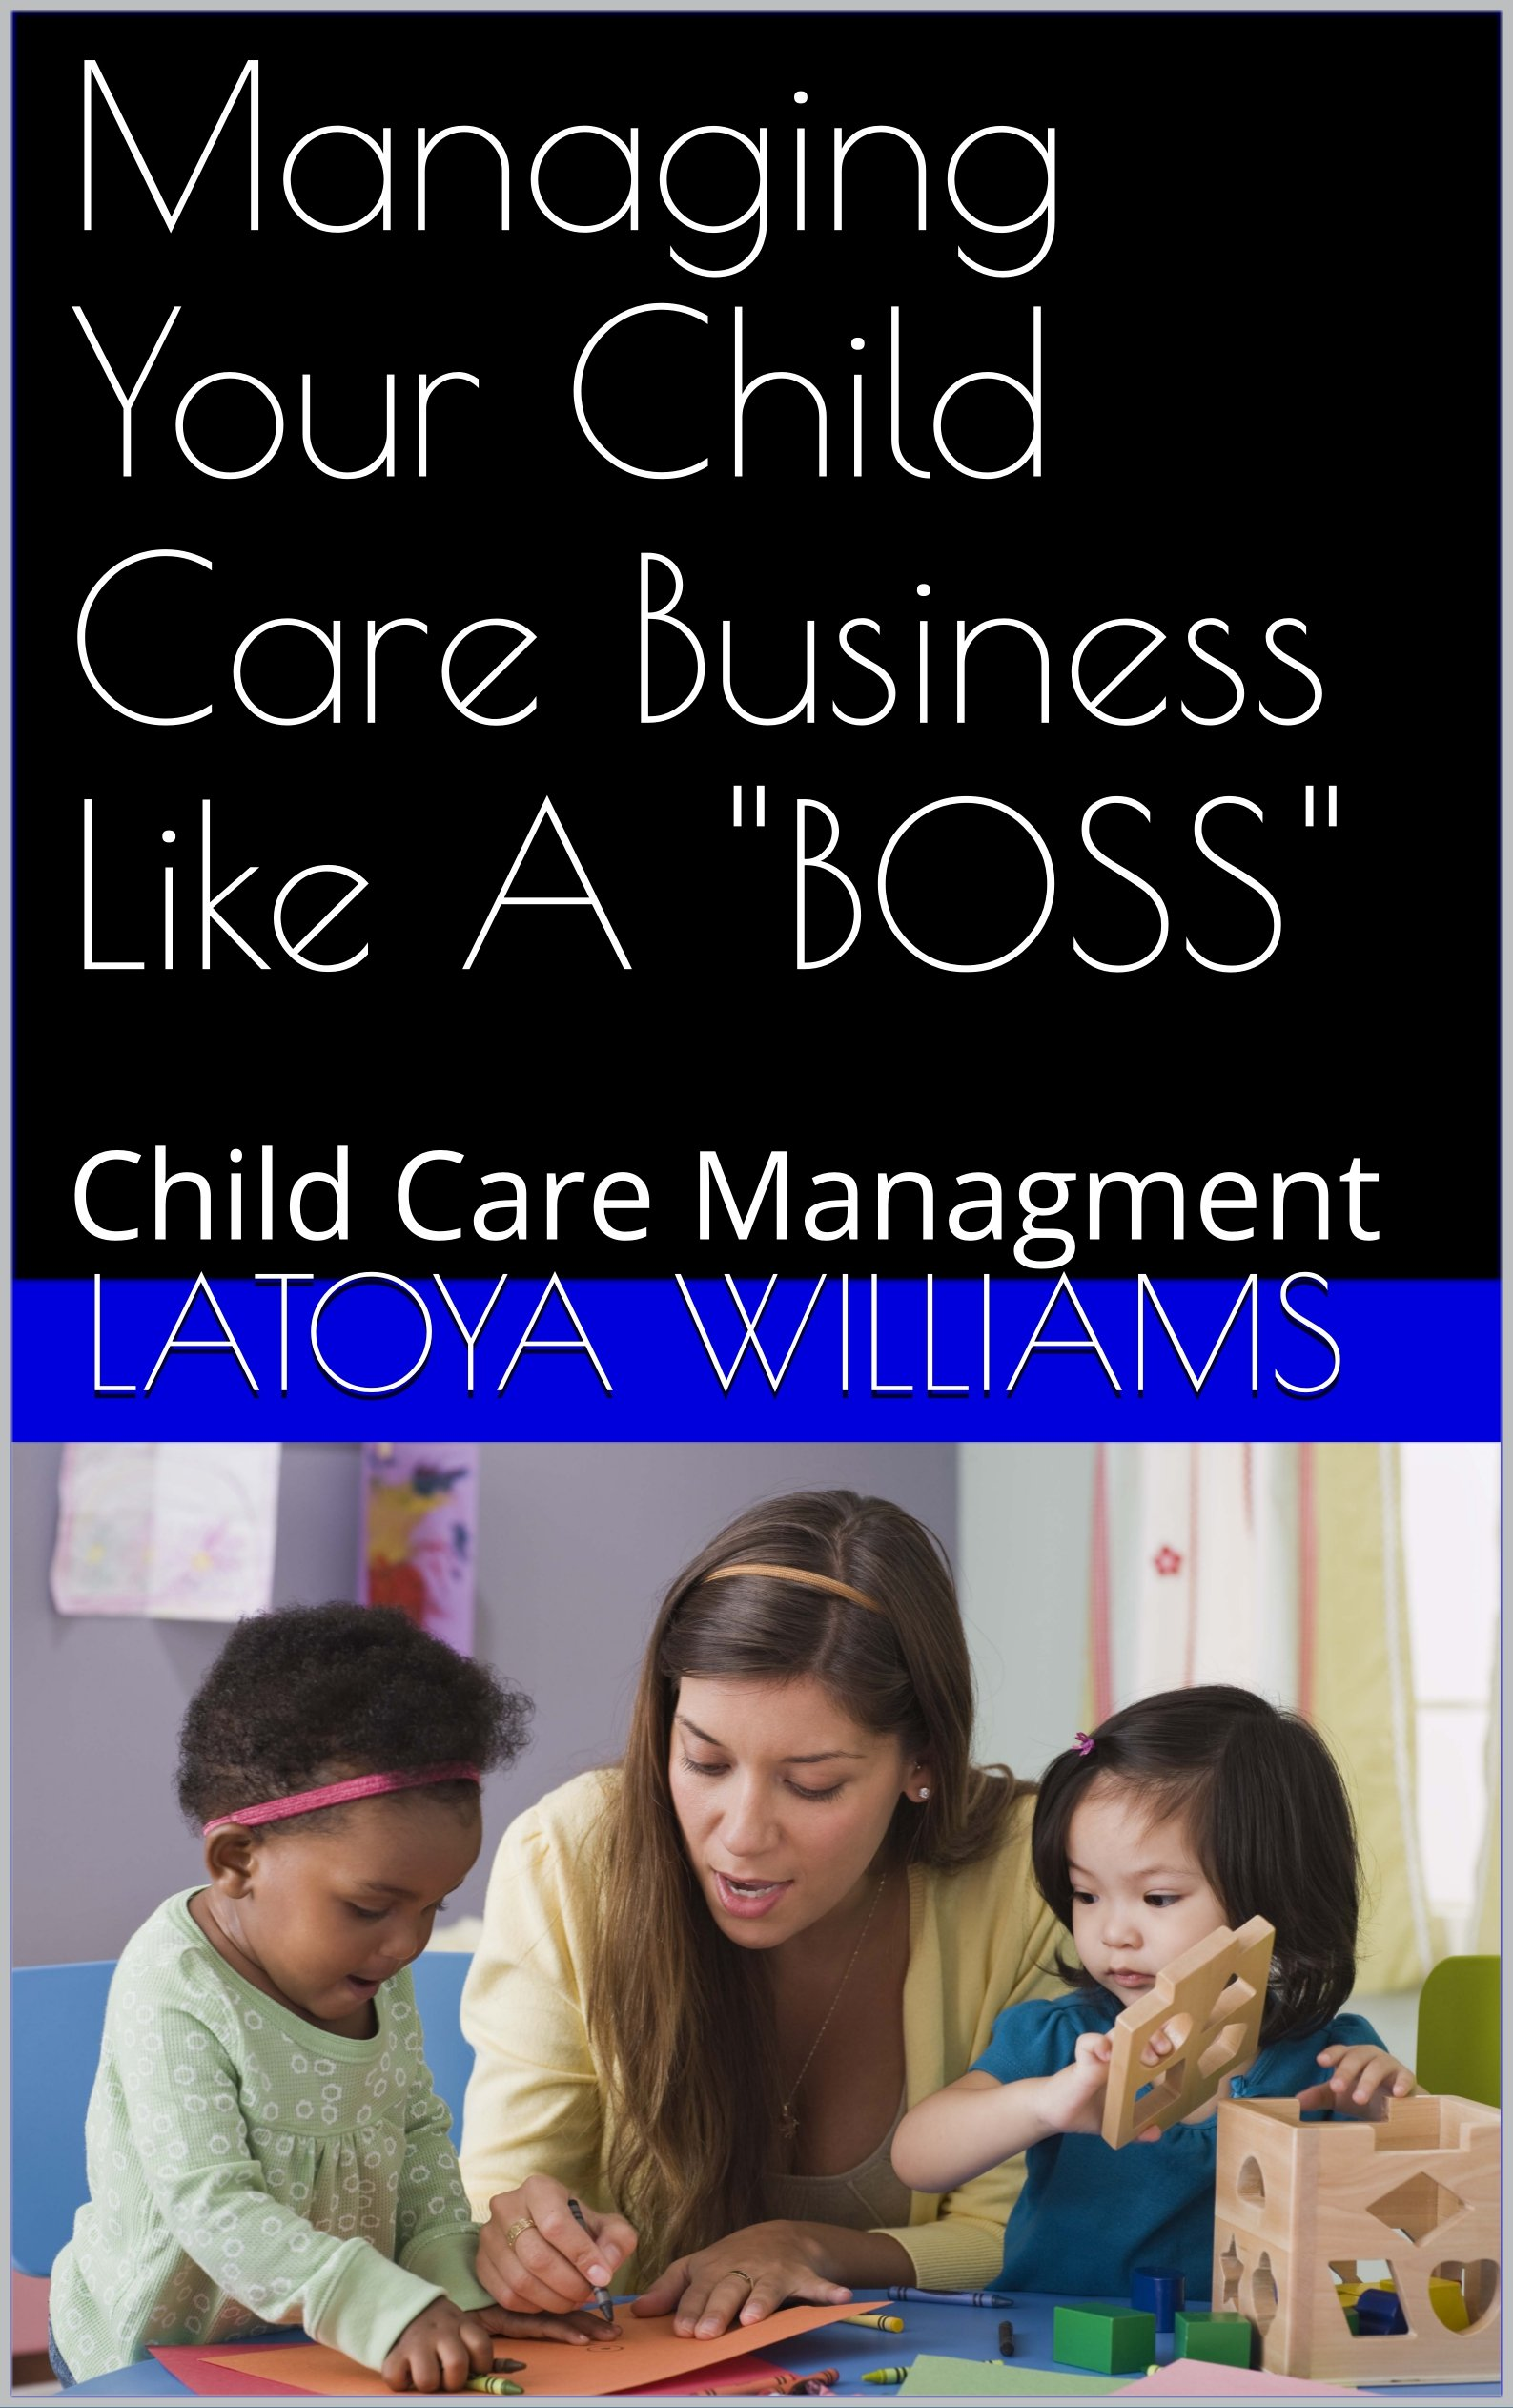 Managing Your Child Care Business Like A